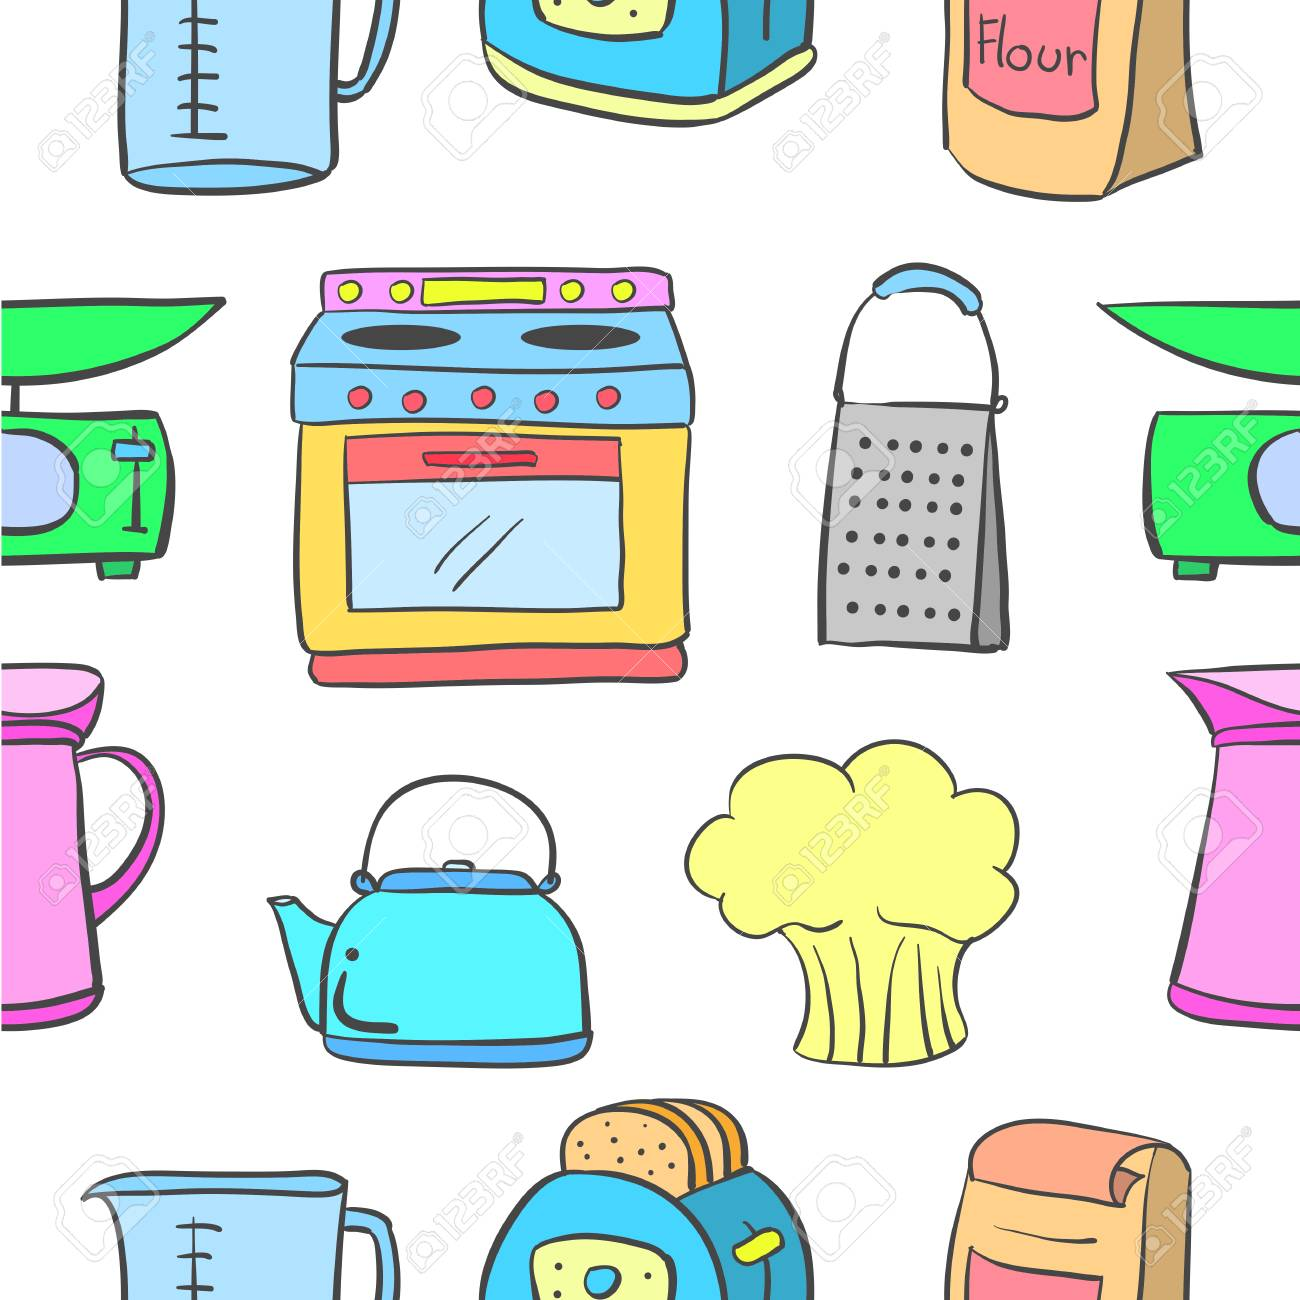 Doodle Of Kitchen Set Pattern Style Royalty Free Cliparts Vectors